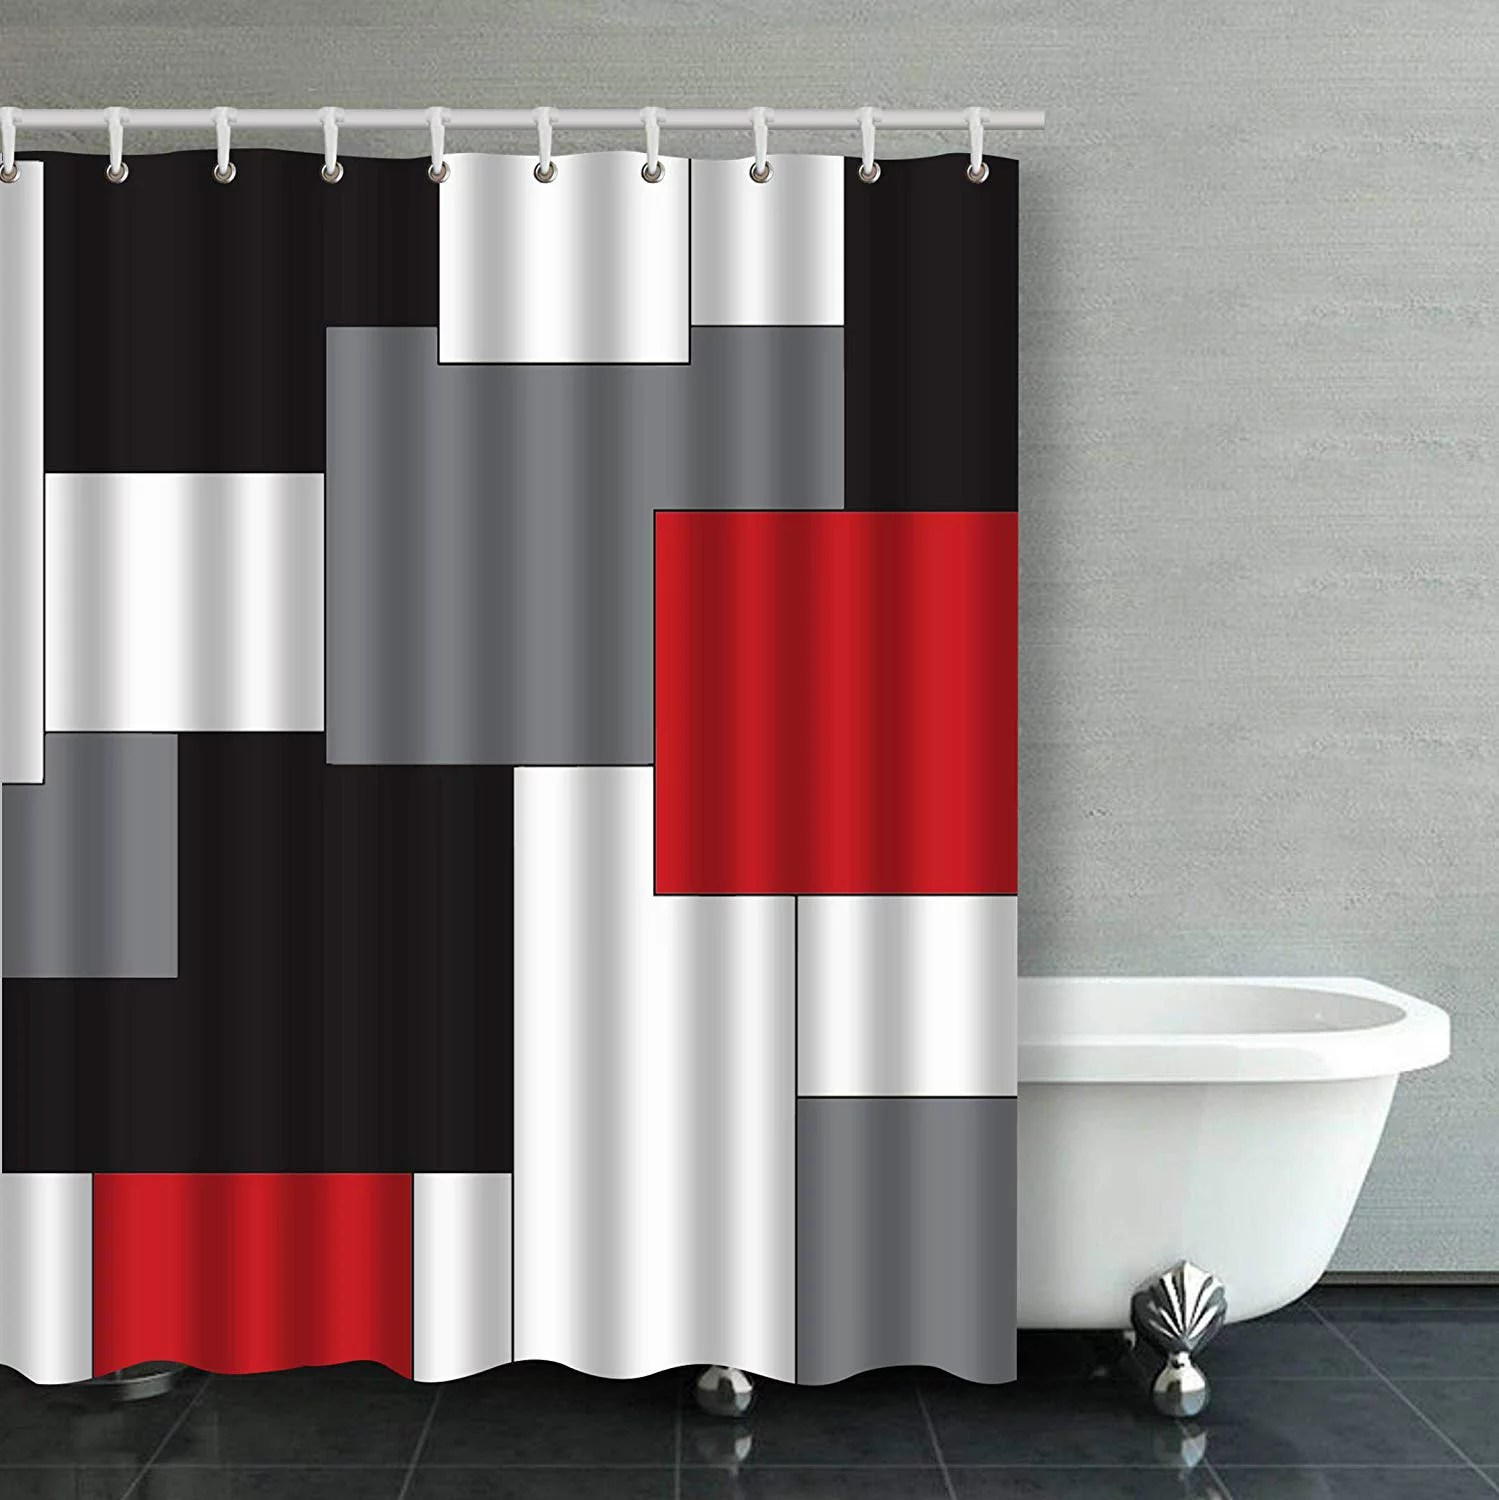 bpbop wavy vertical stripes red black white and grey bathroom shower curtain 60x72 inches walmart com